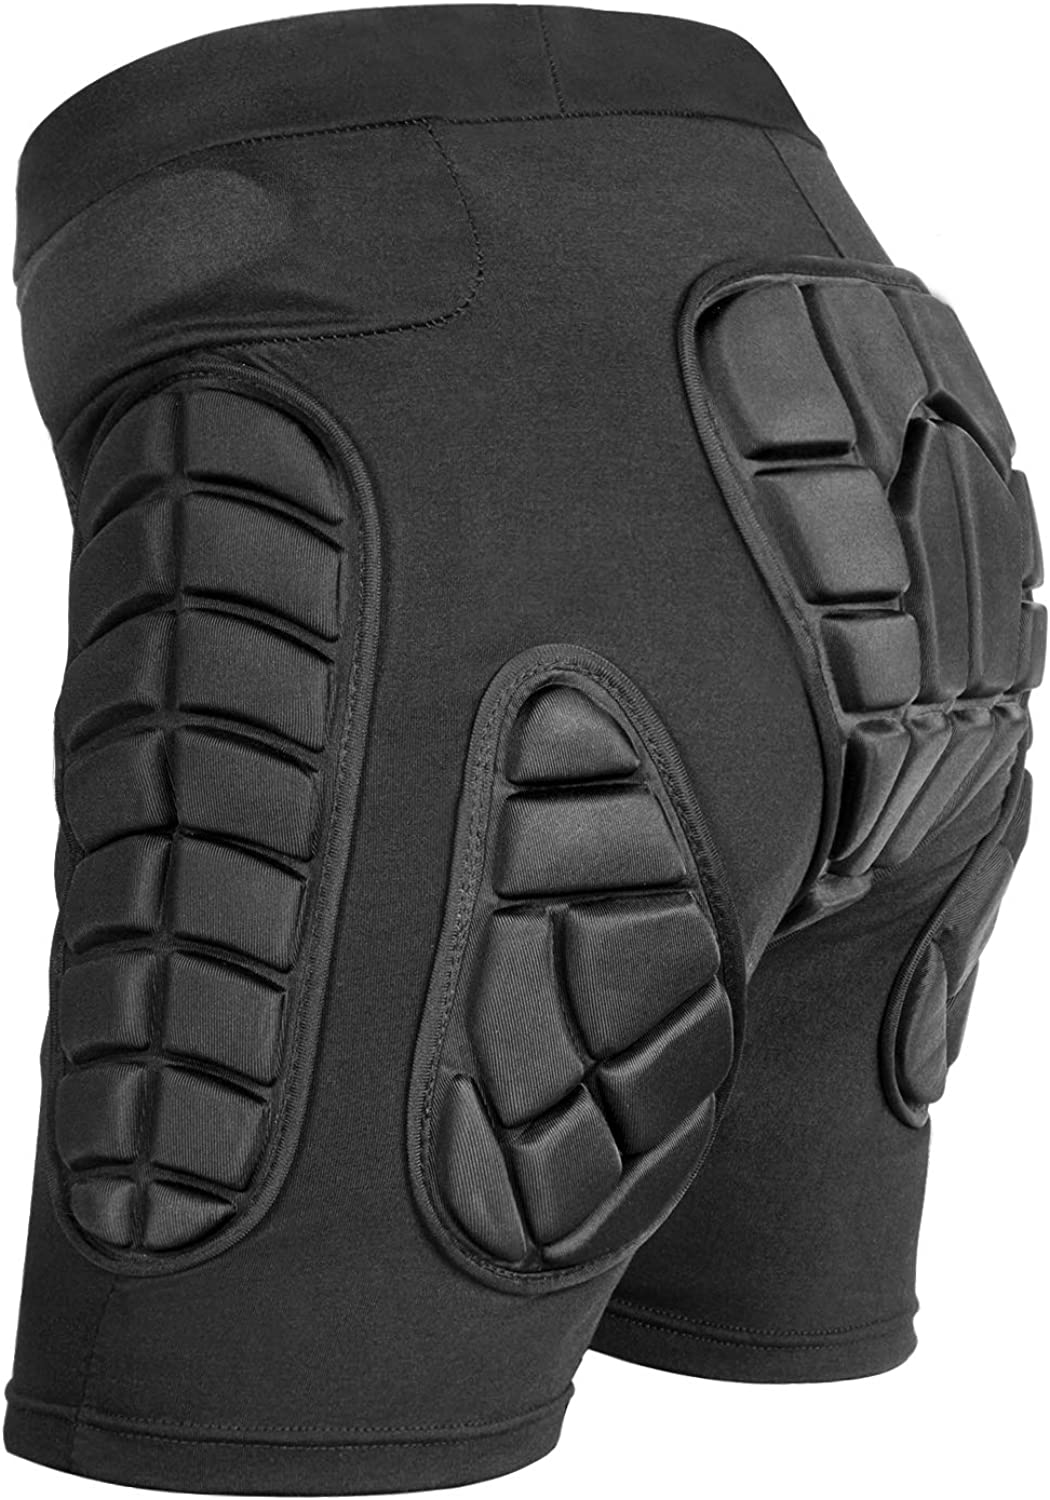 Protective Padded Shorts,3D Protection for Hip,EVA Pad Short Pants Protective Gear